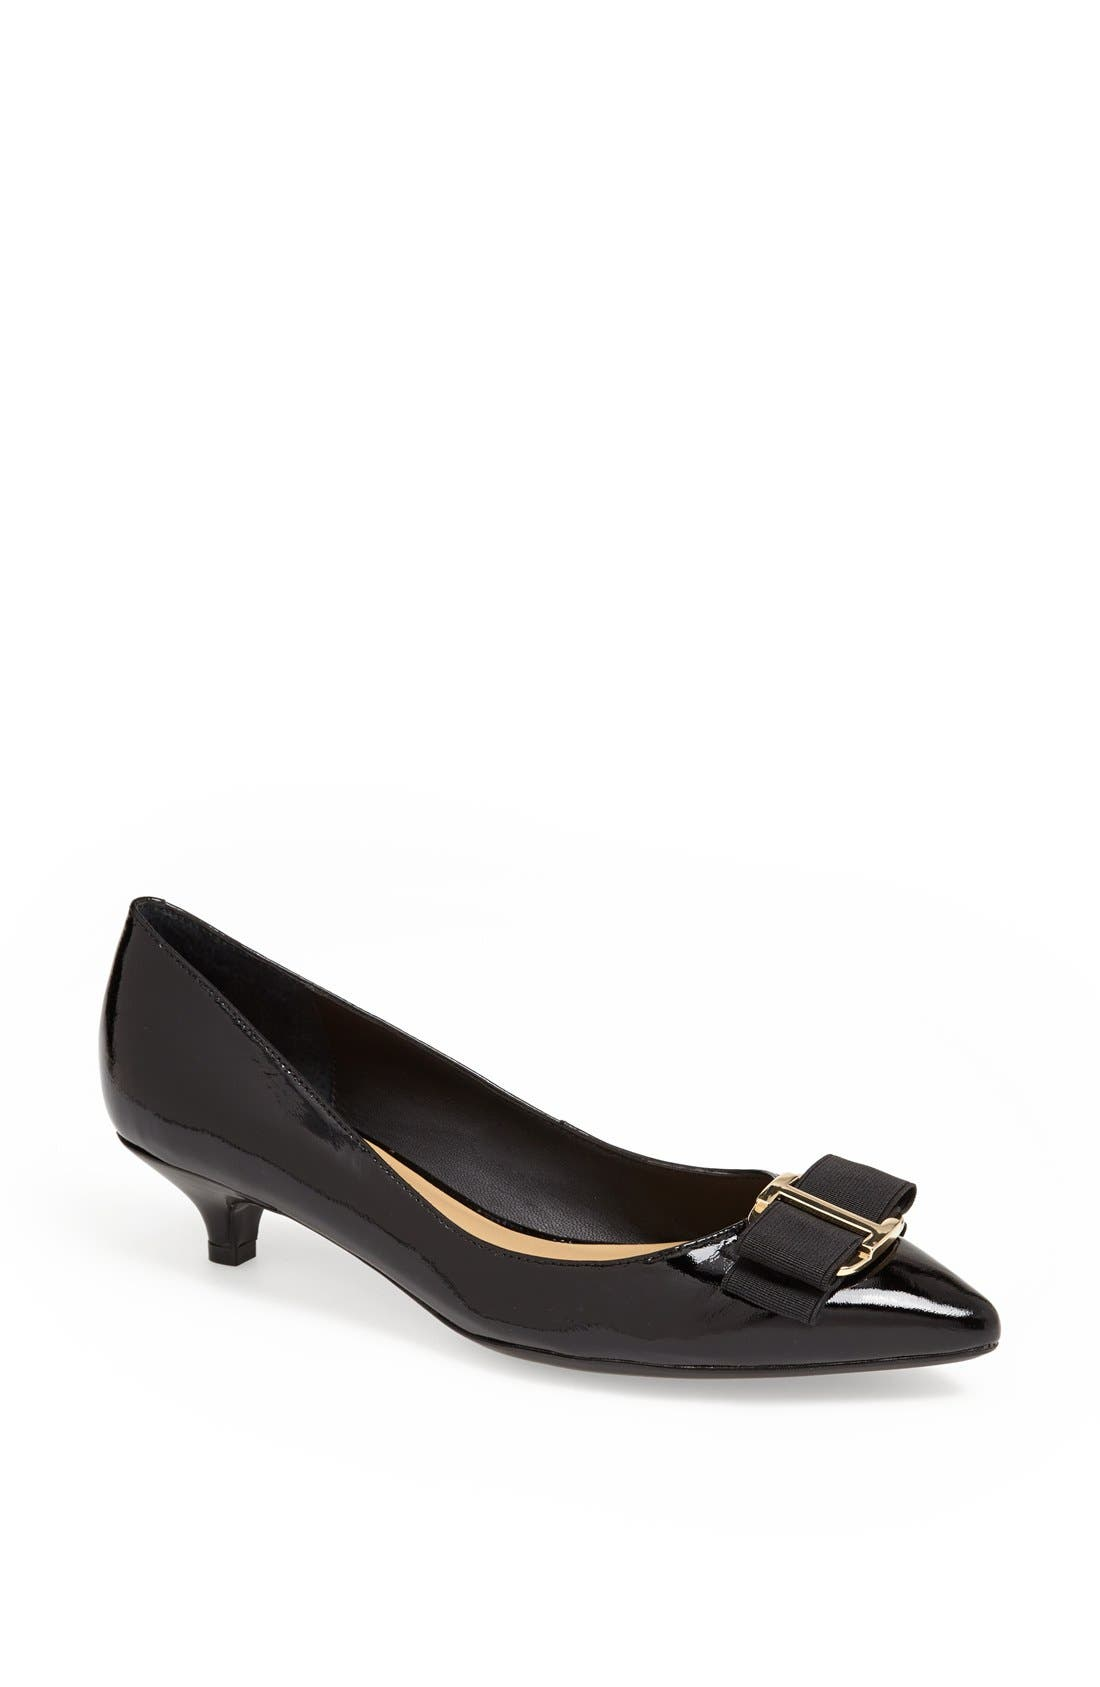 Alternate Image 1 Selected - Isaac Mizrahi New York 'Gina' Pump